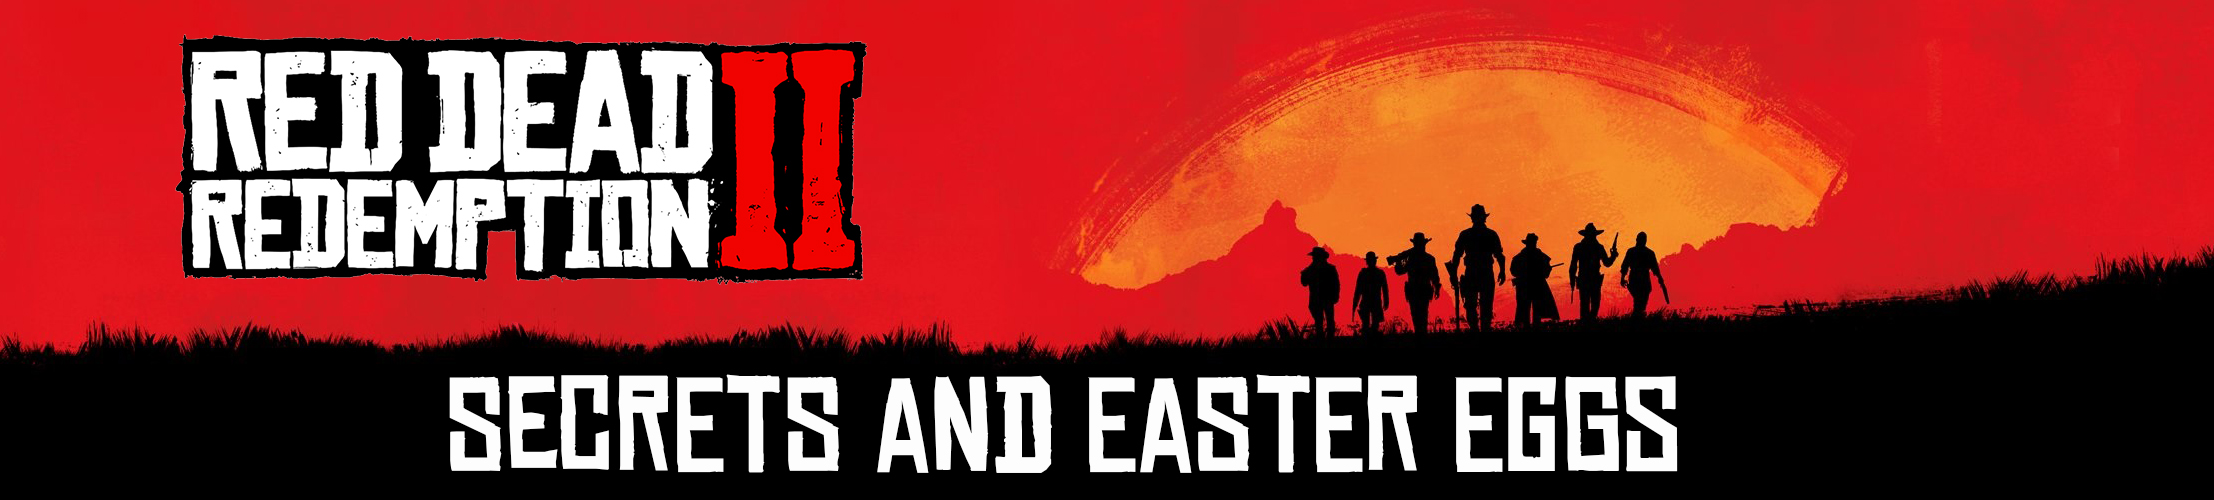 Red Dead Redemption 2 Secrets and Easter Eggs